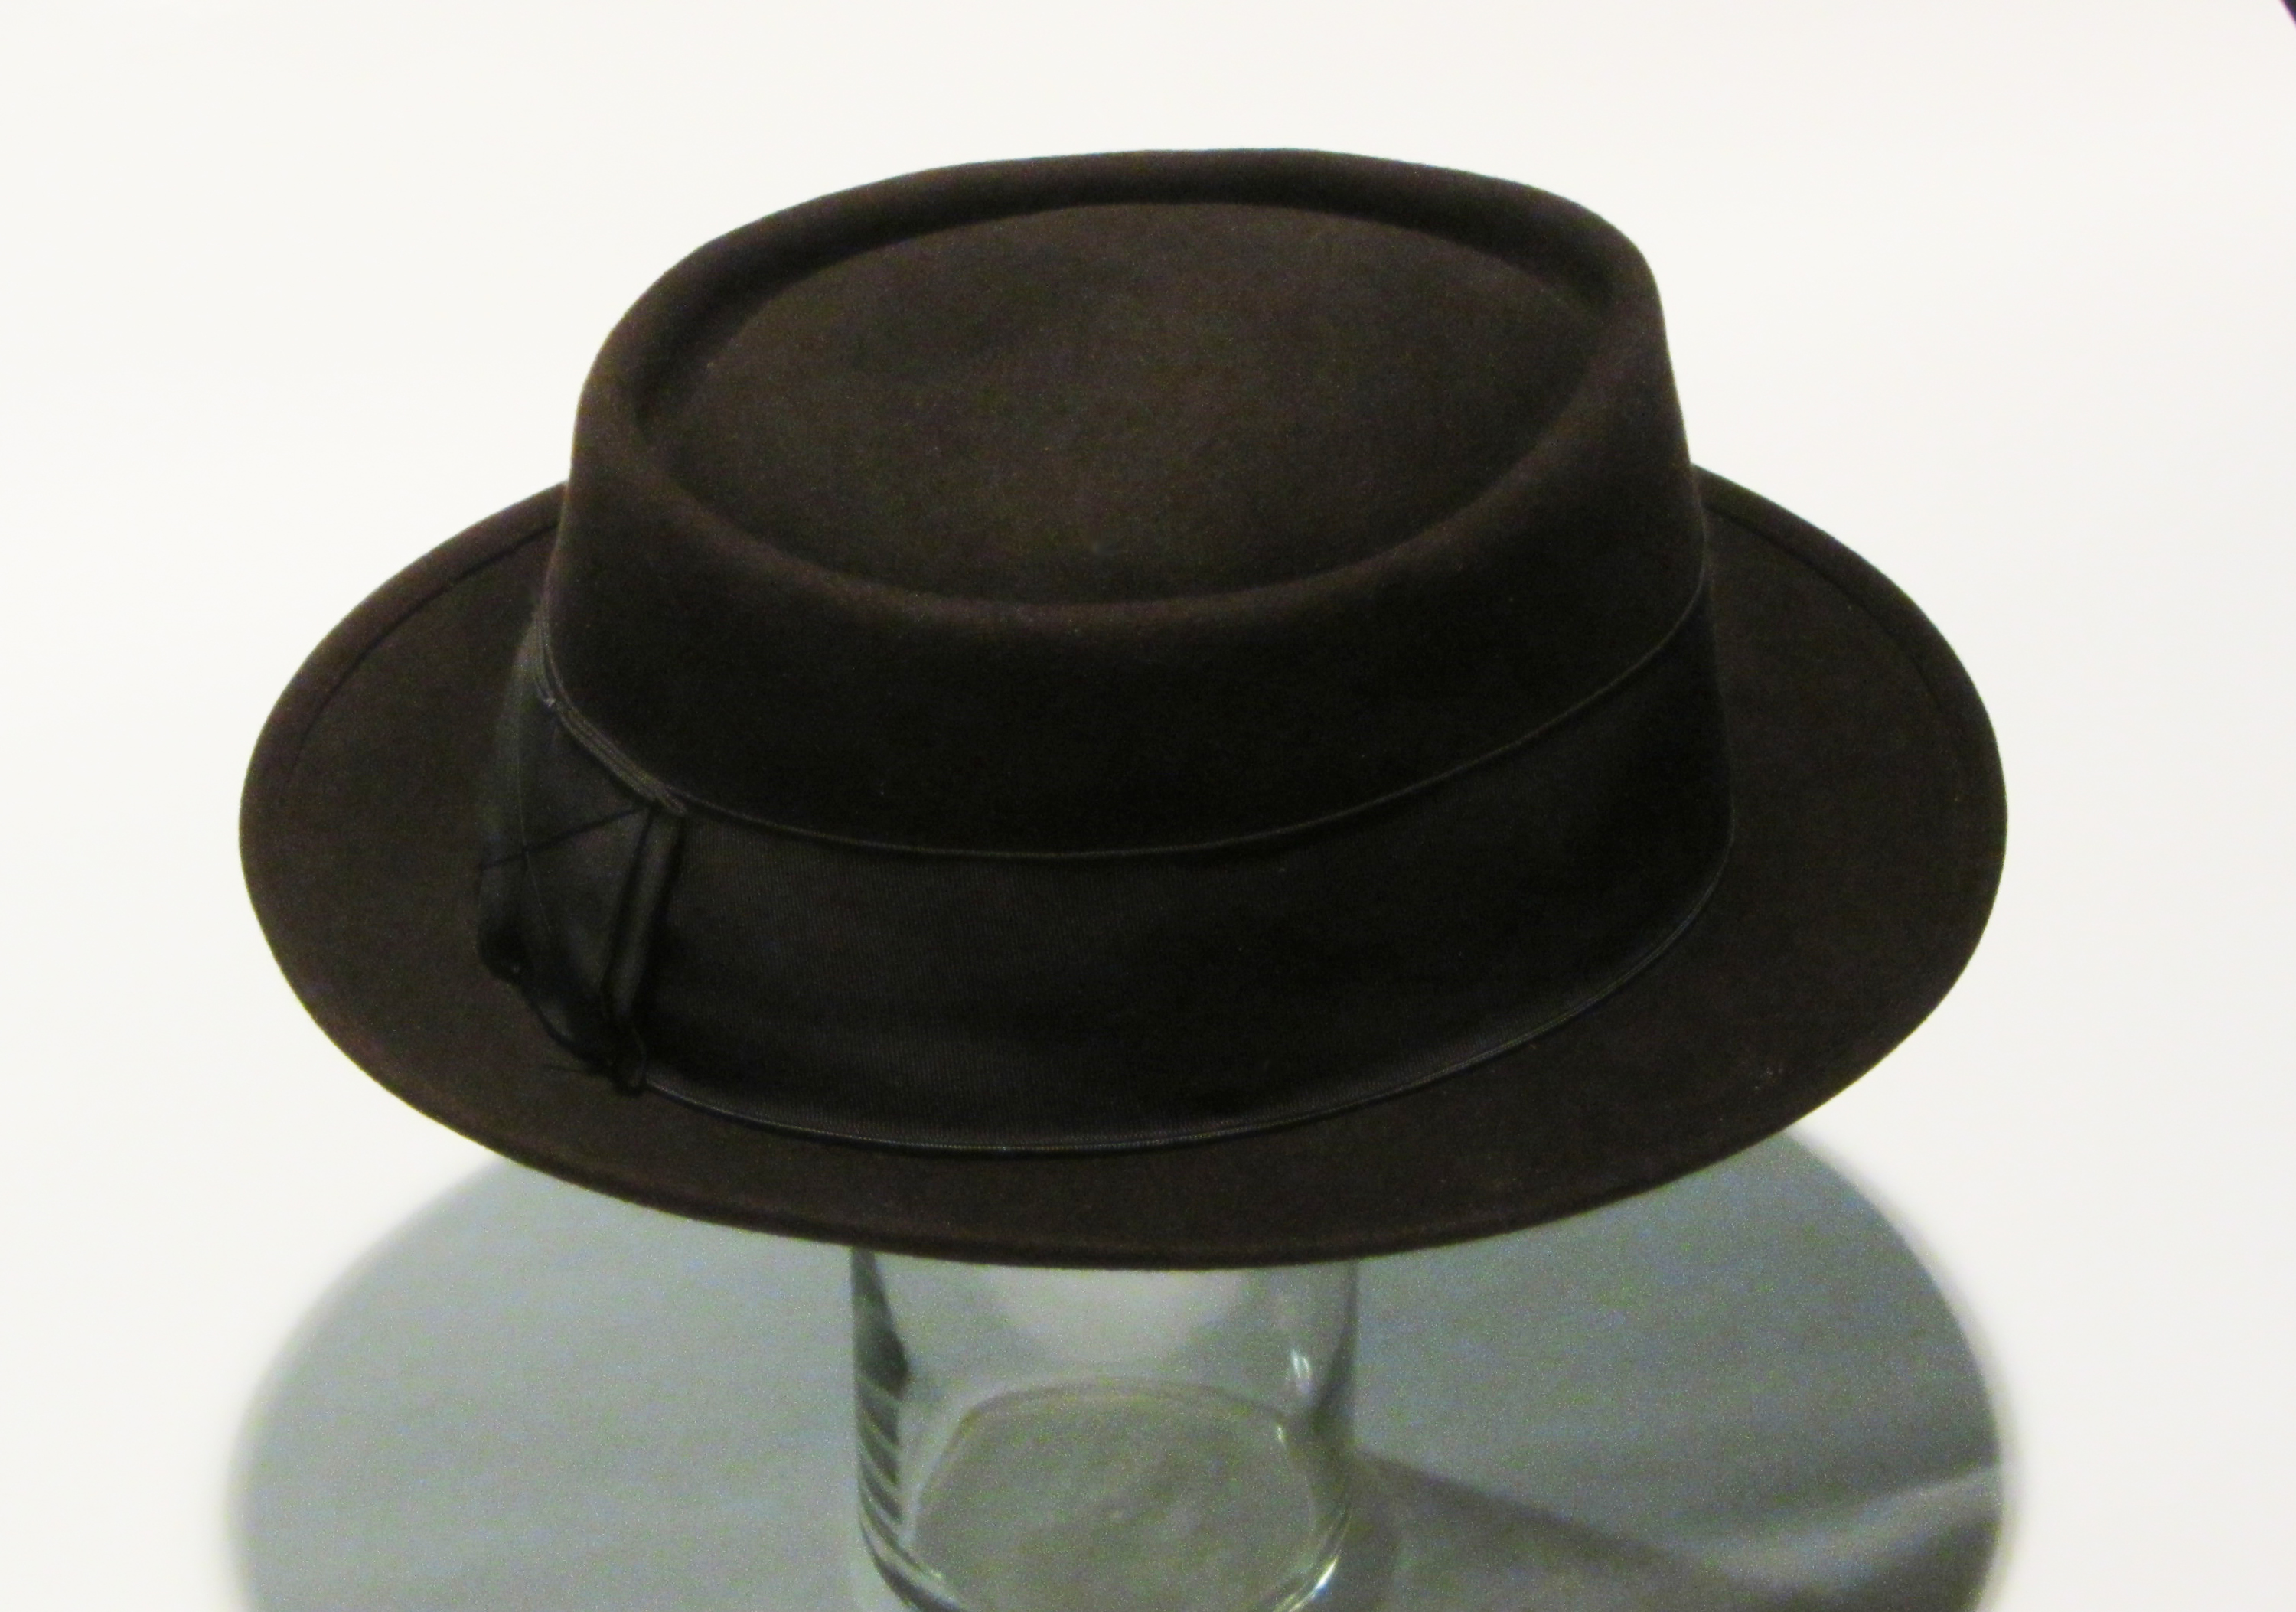 Pork pie hat - Wikipedia 7ec7c72ff5d6